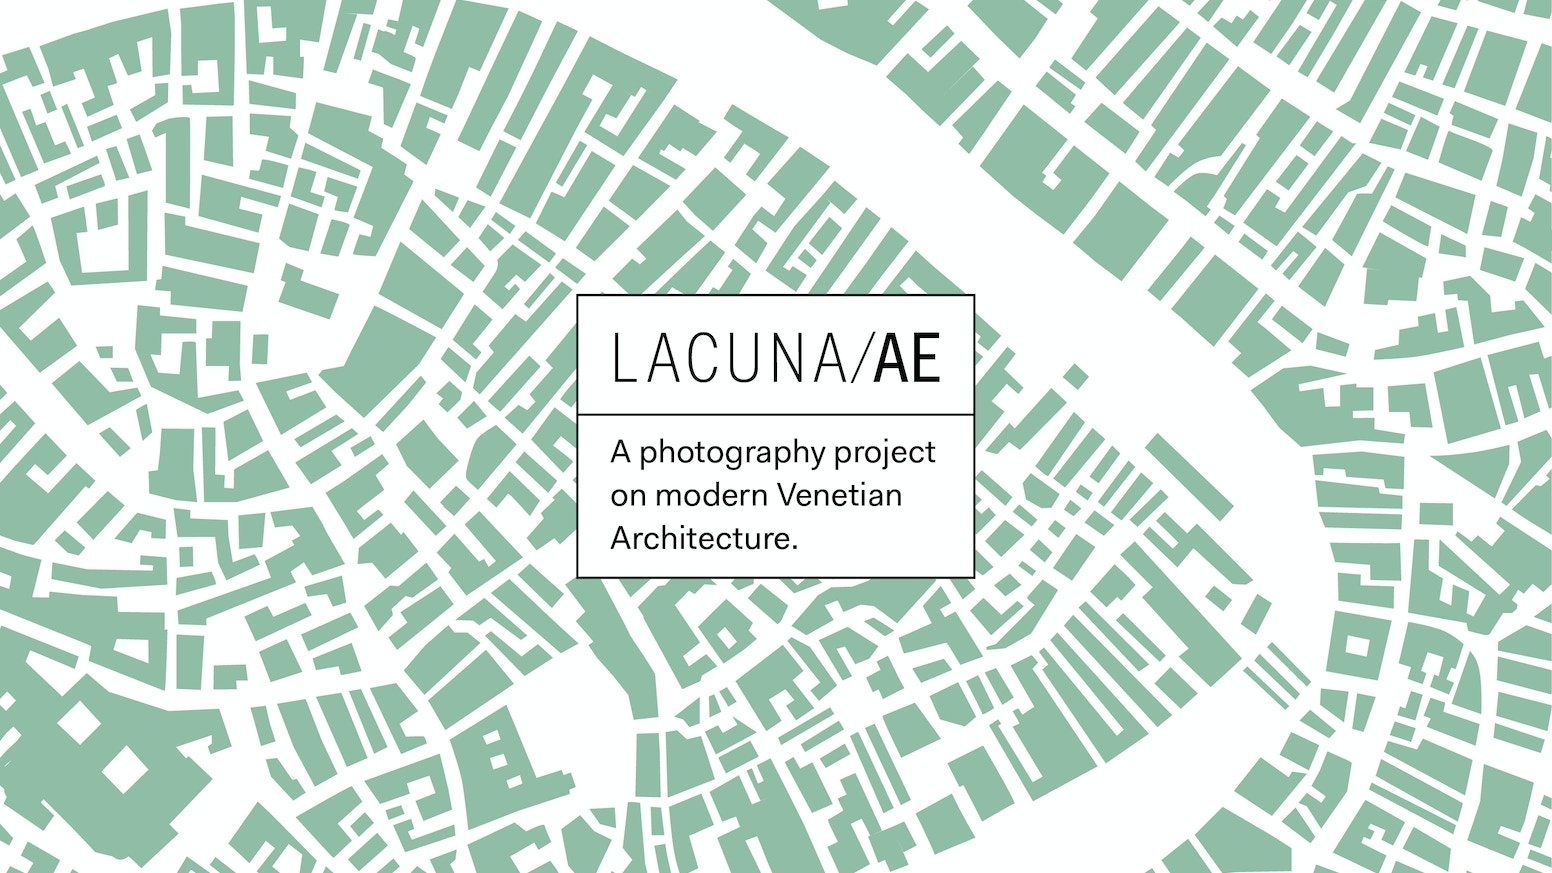 A unique photography project dedicated to modern architecture in Venice